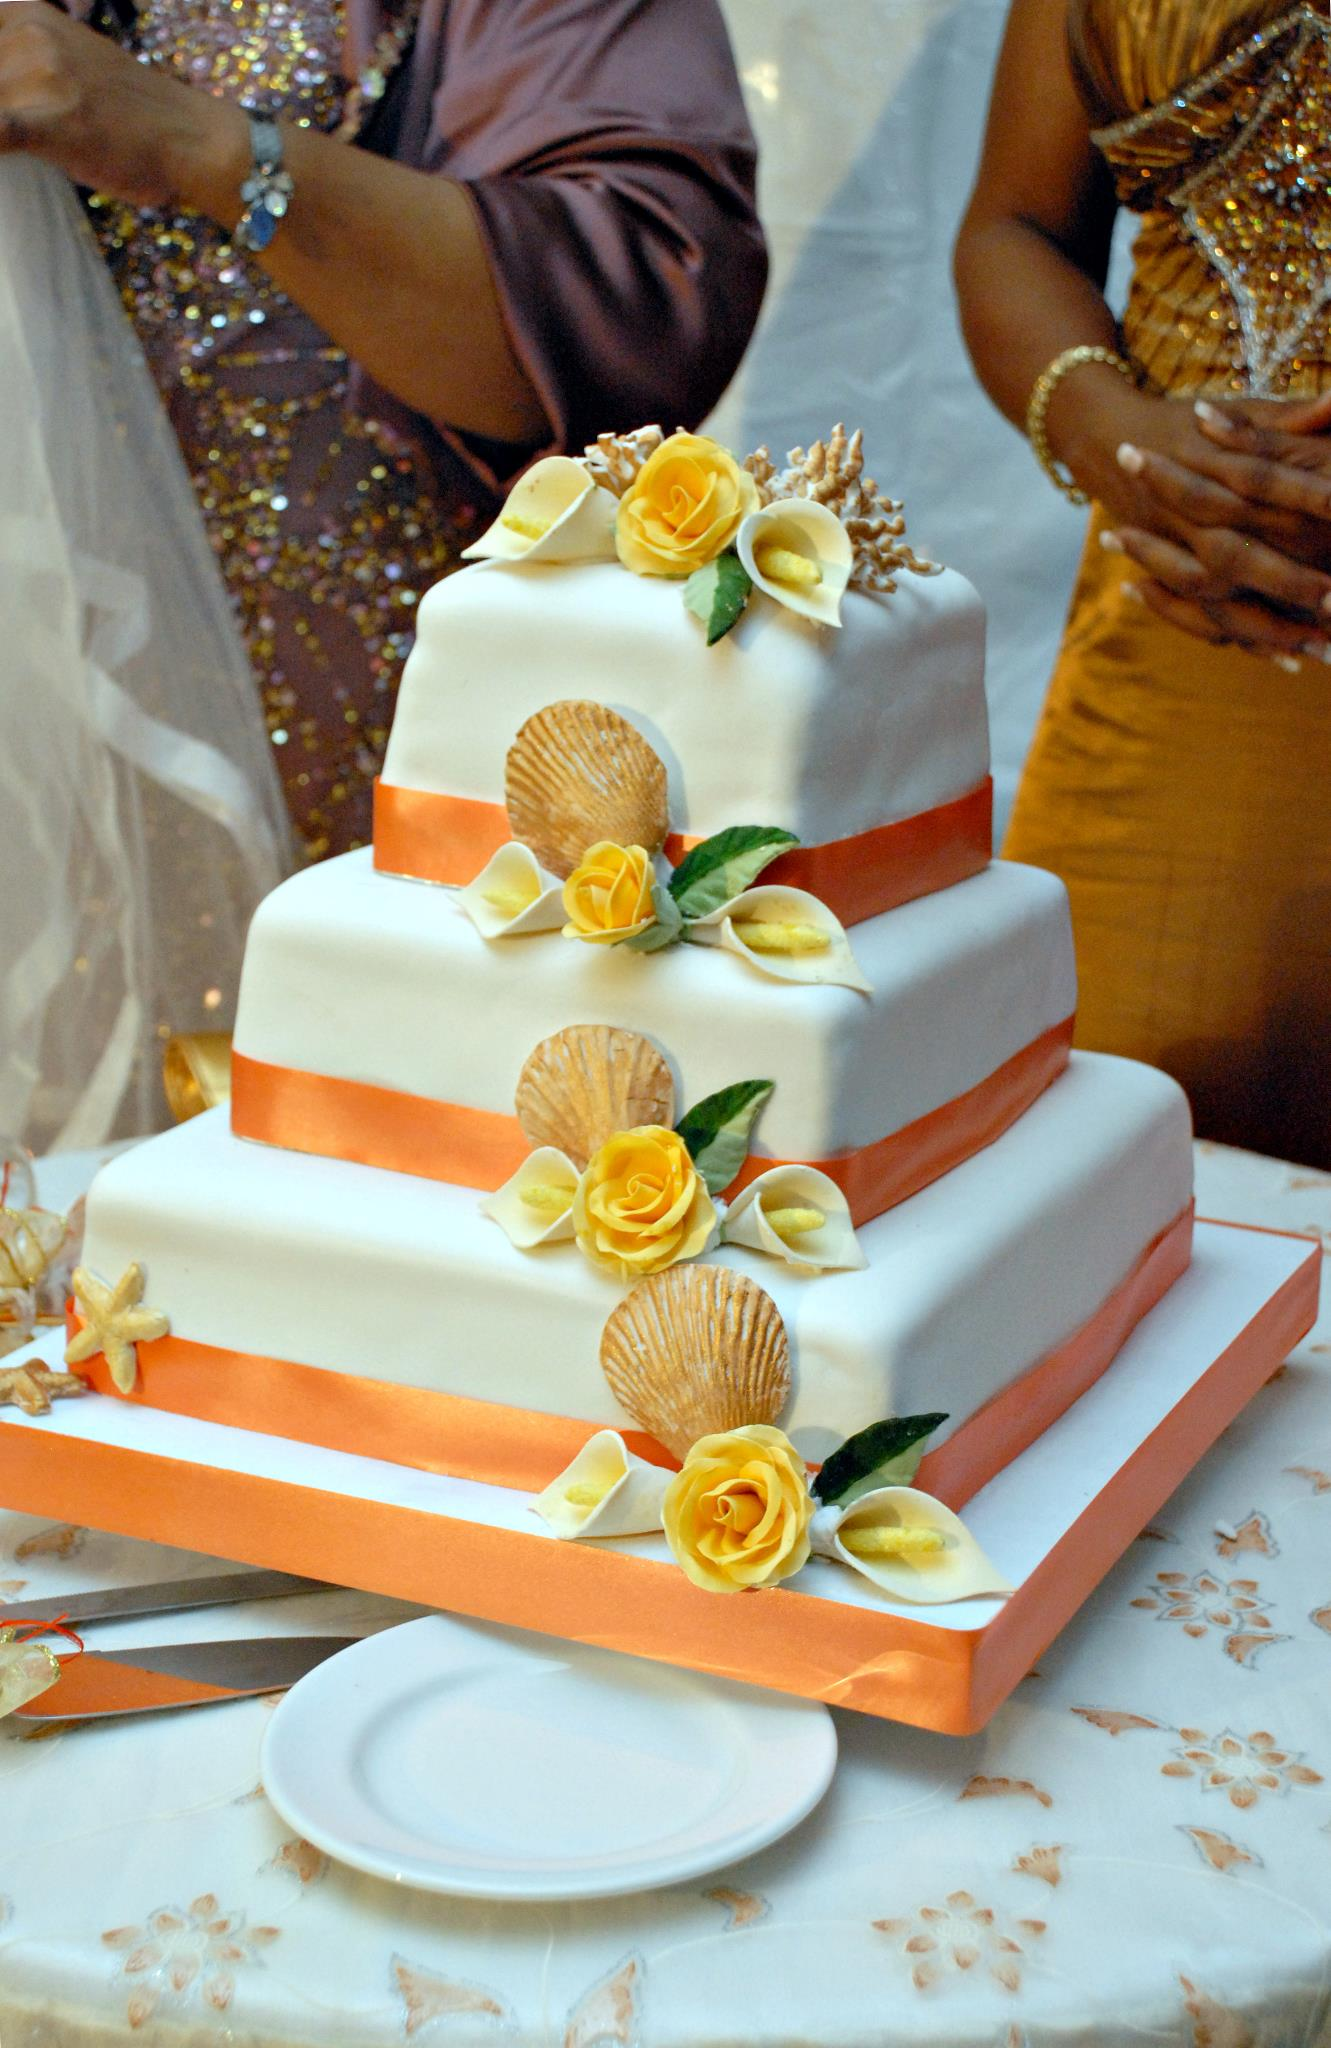 jamaican wedding cake - photo #24